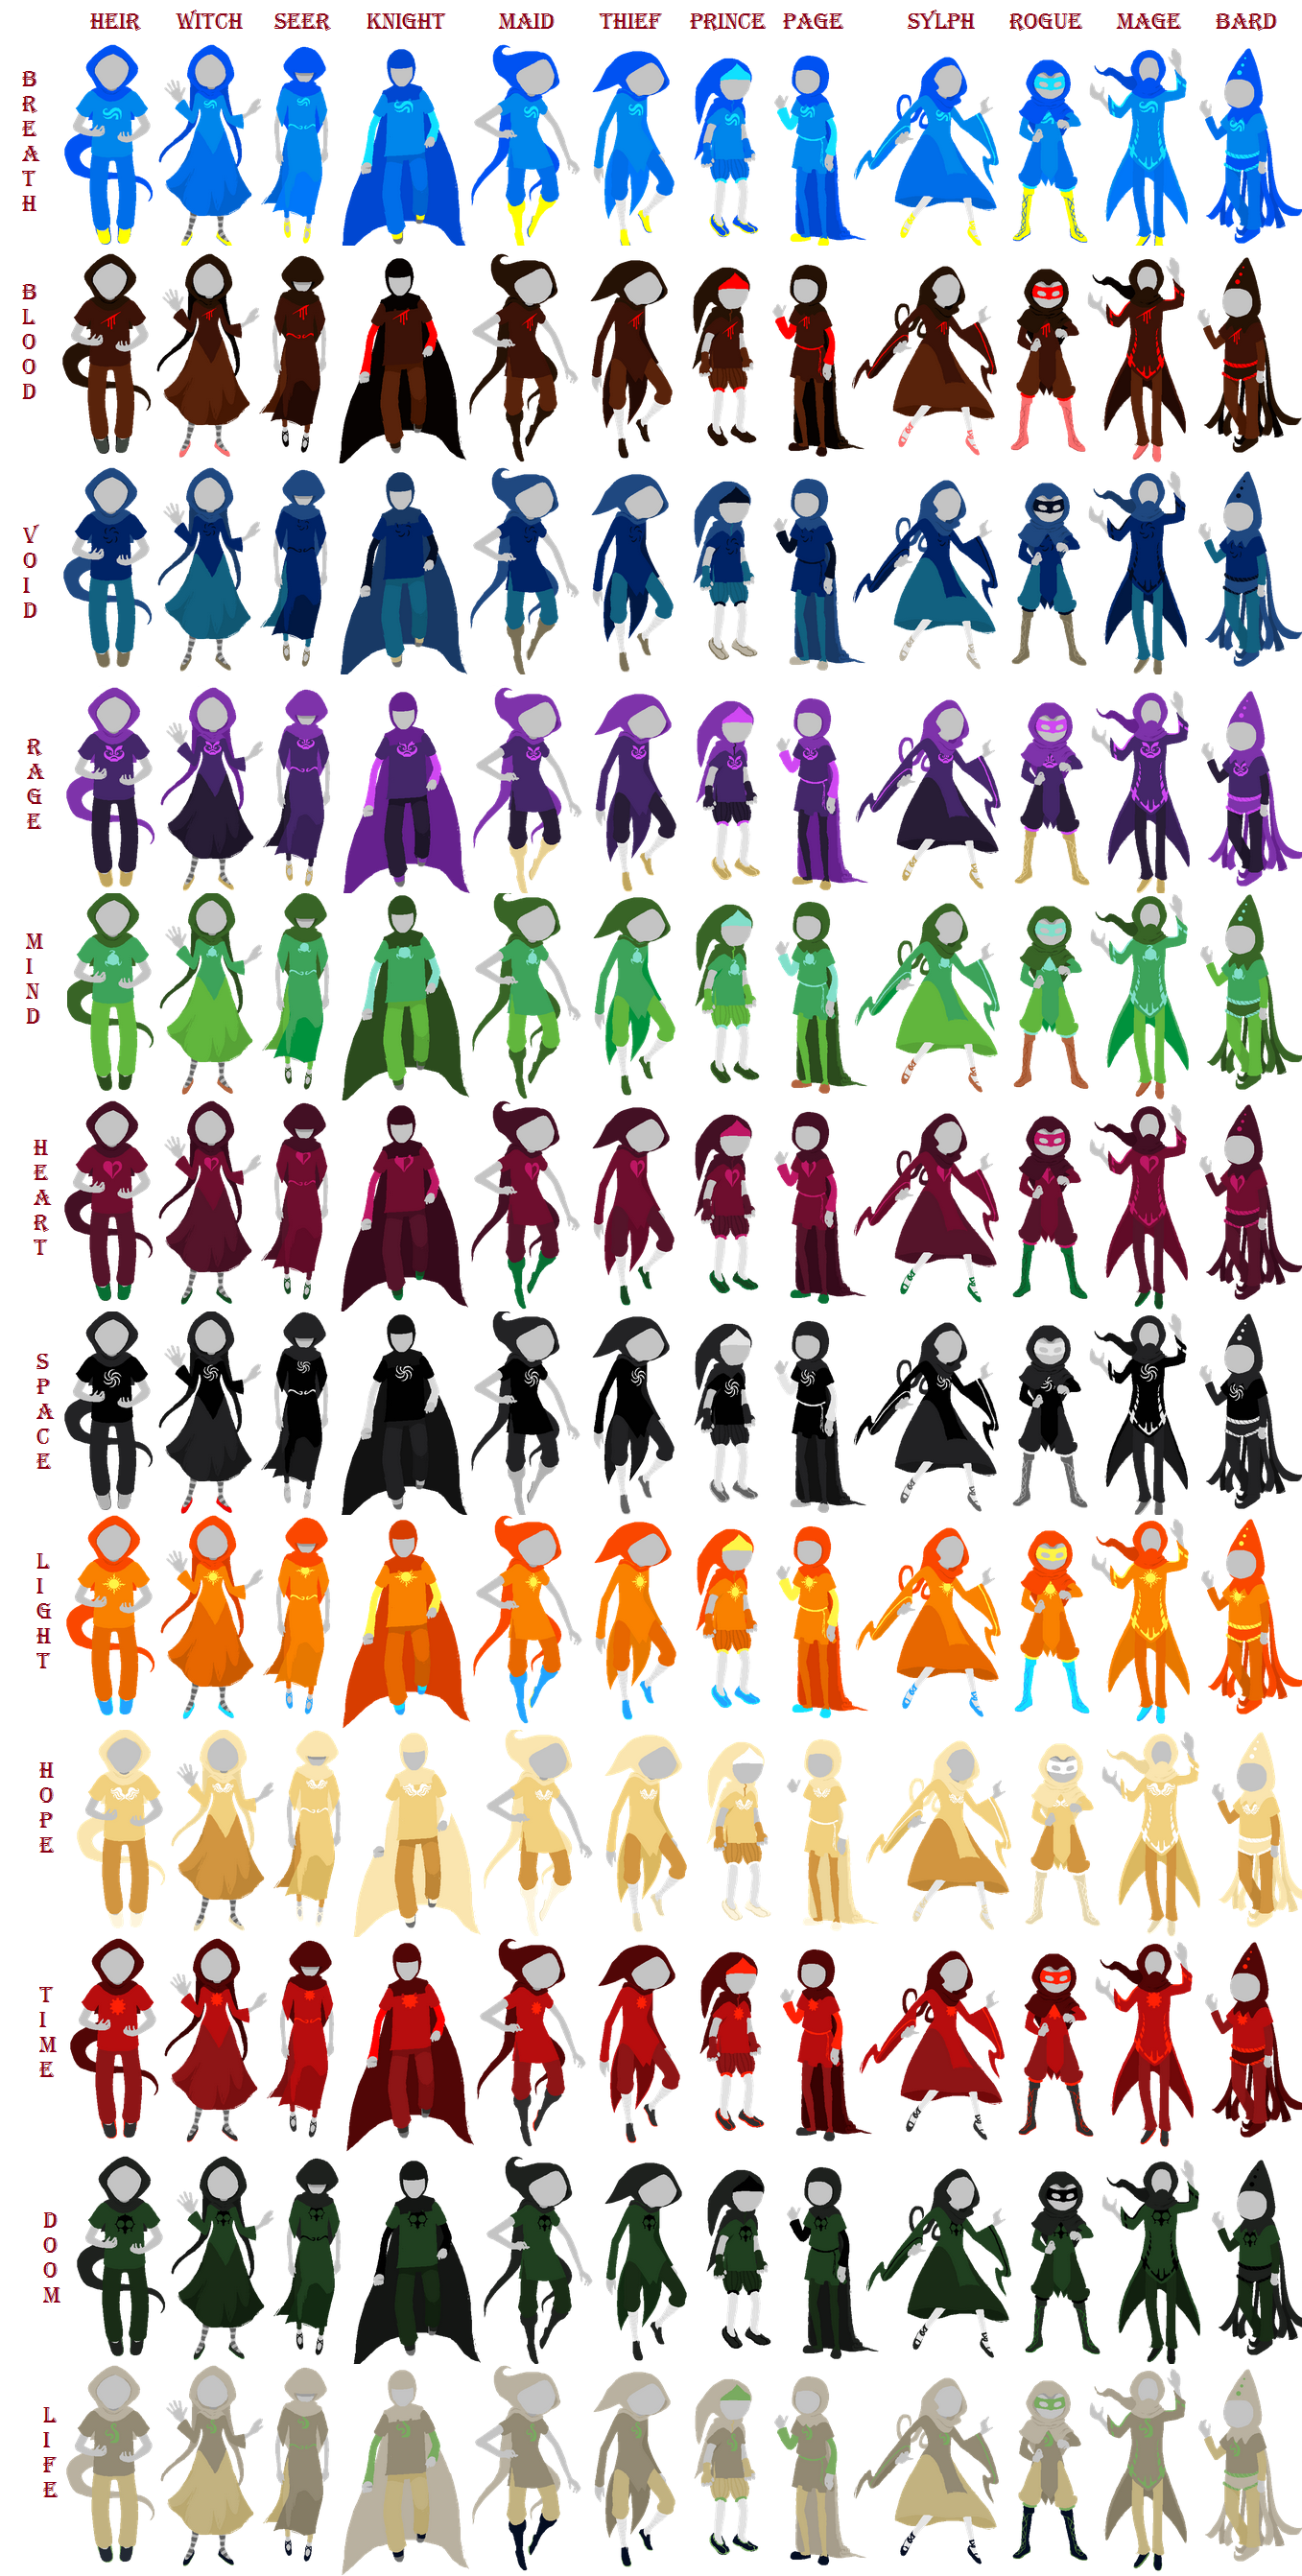 homestuck_god_tier_classes_and_aspects_by_brandipinette ... Homestuck God Tier Aspect